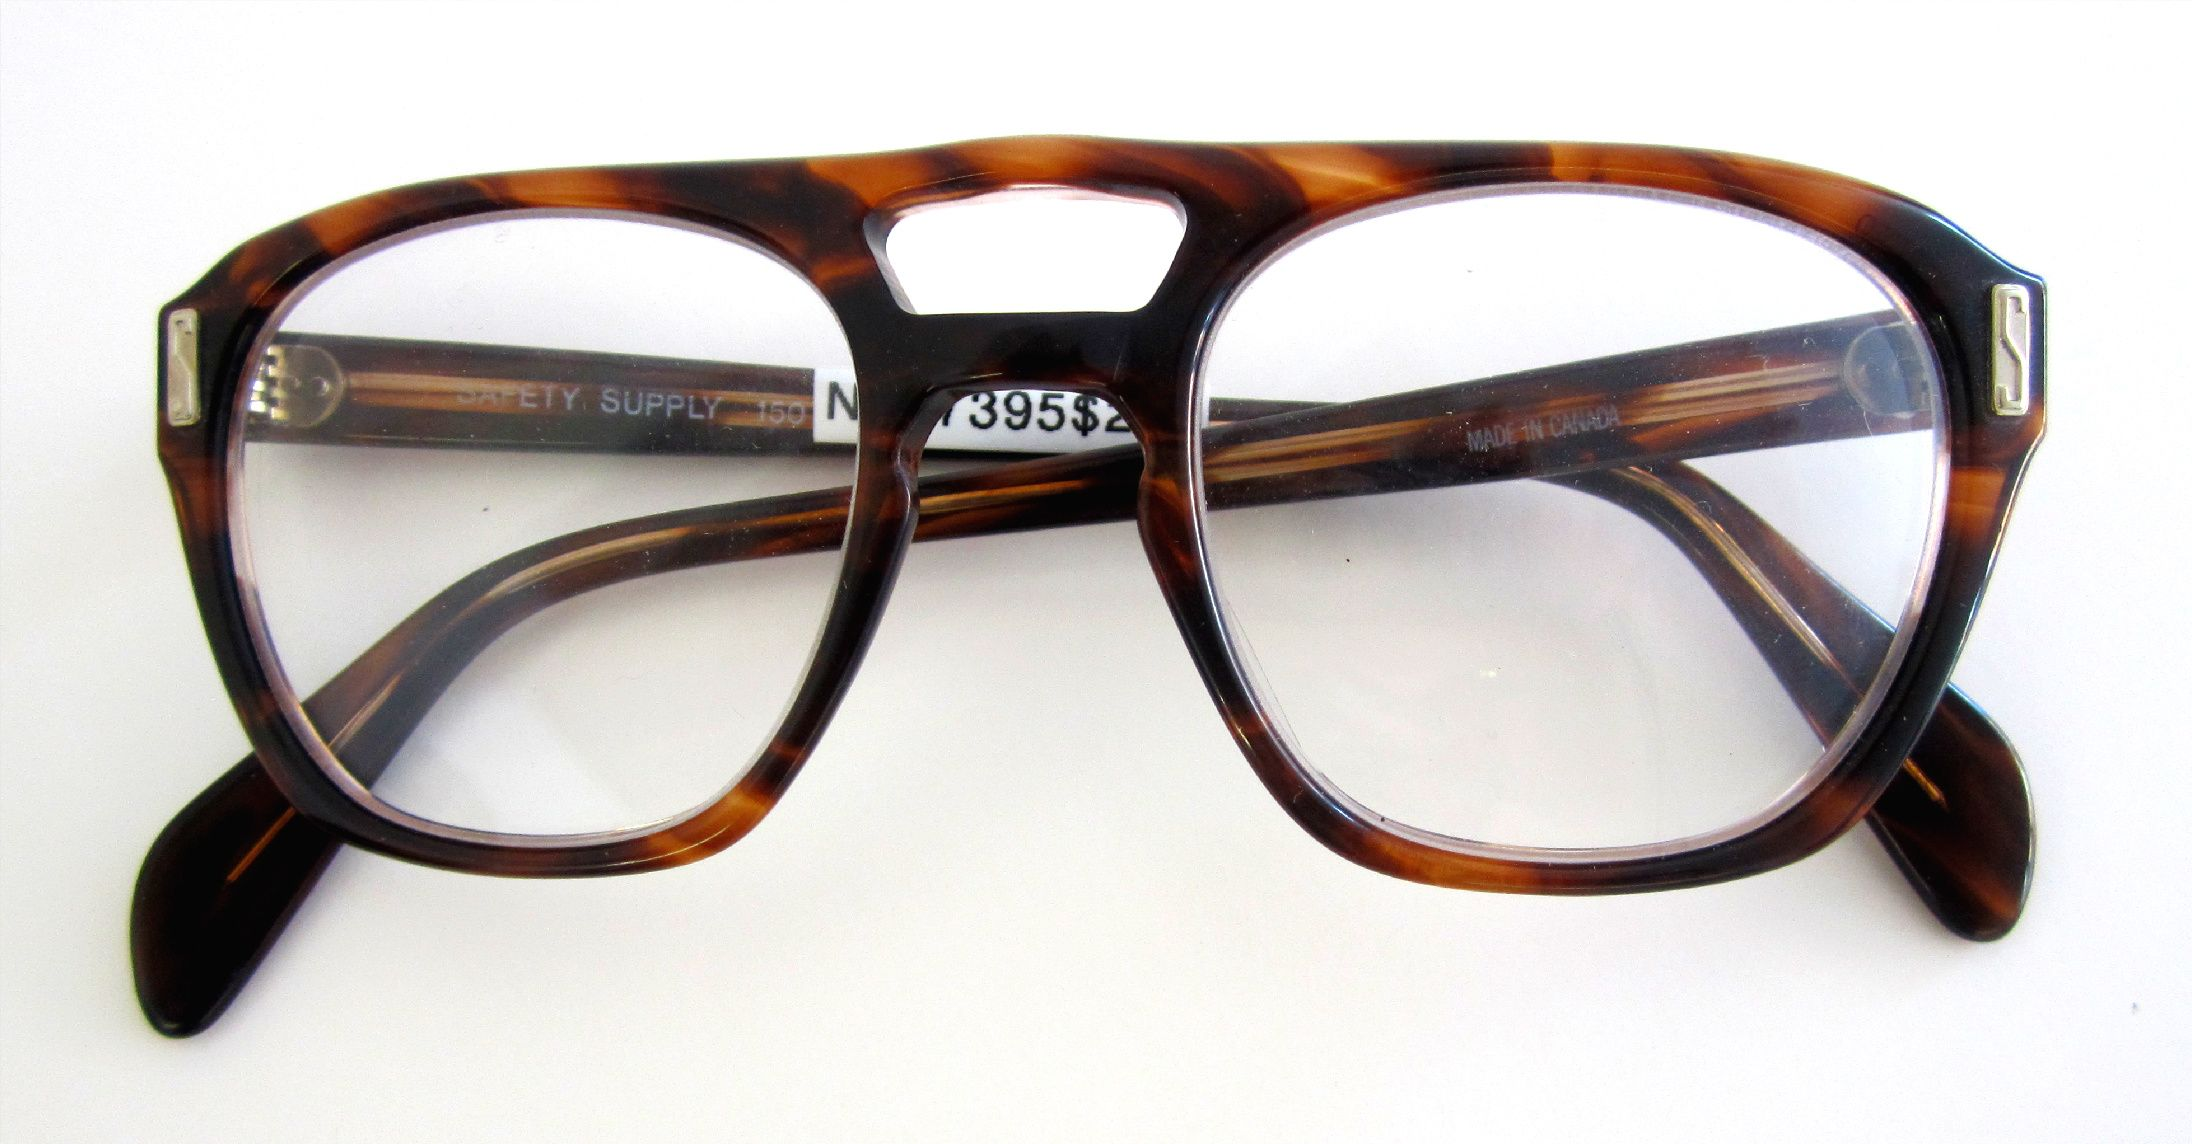 MadeinCanada vintage Safety Supply glasses from